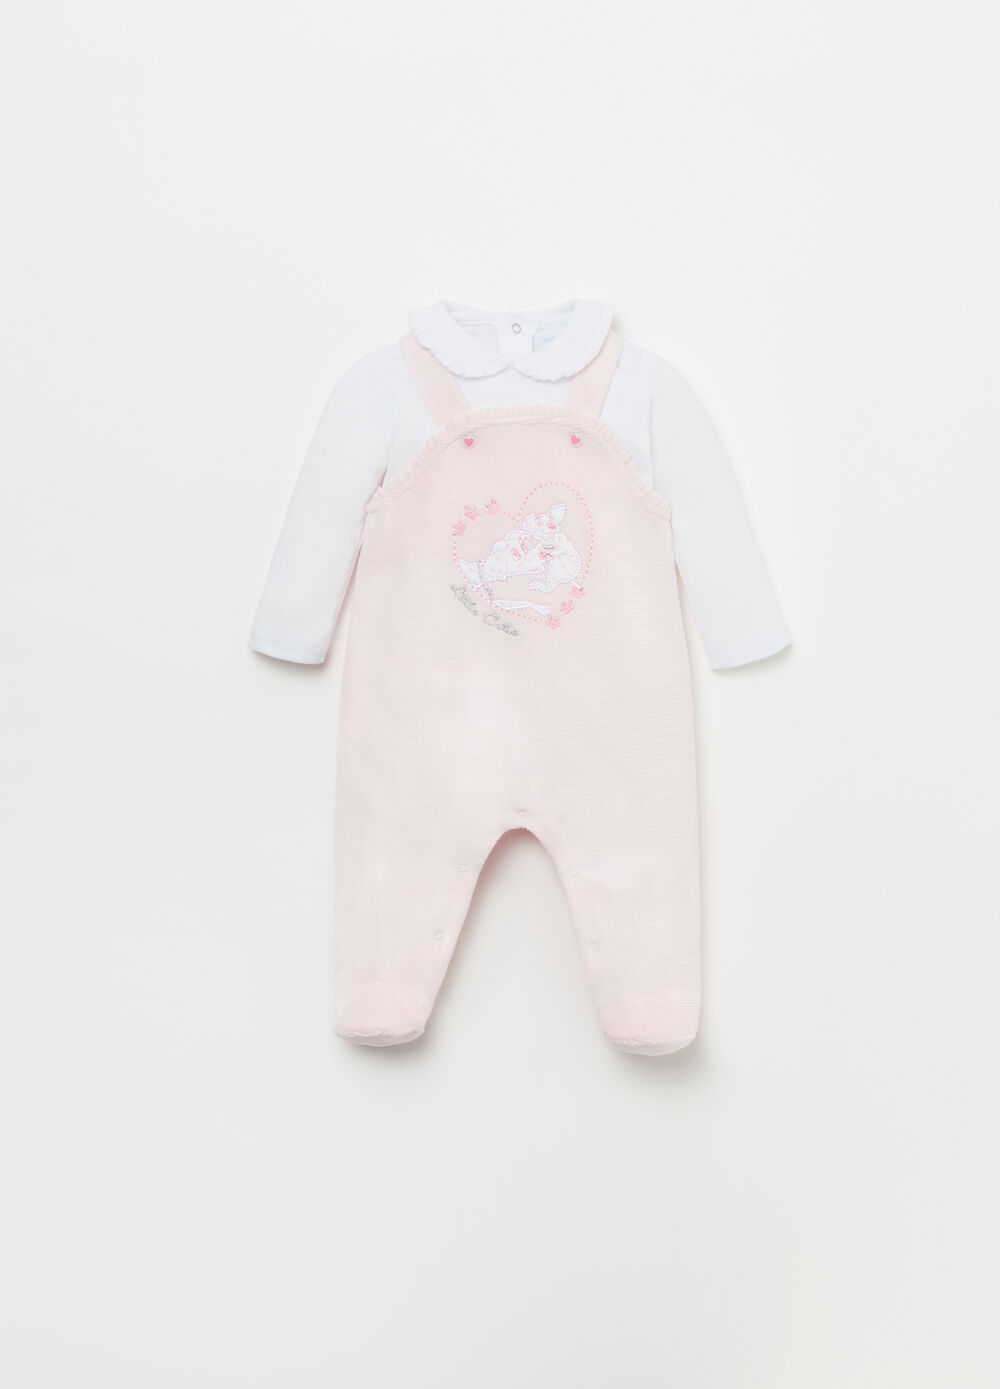 Disney Baby outfit in cotton blend